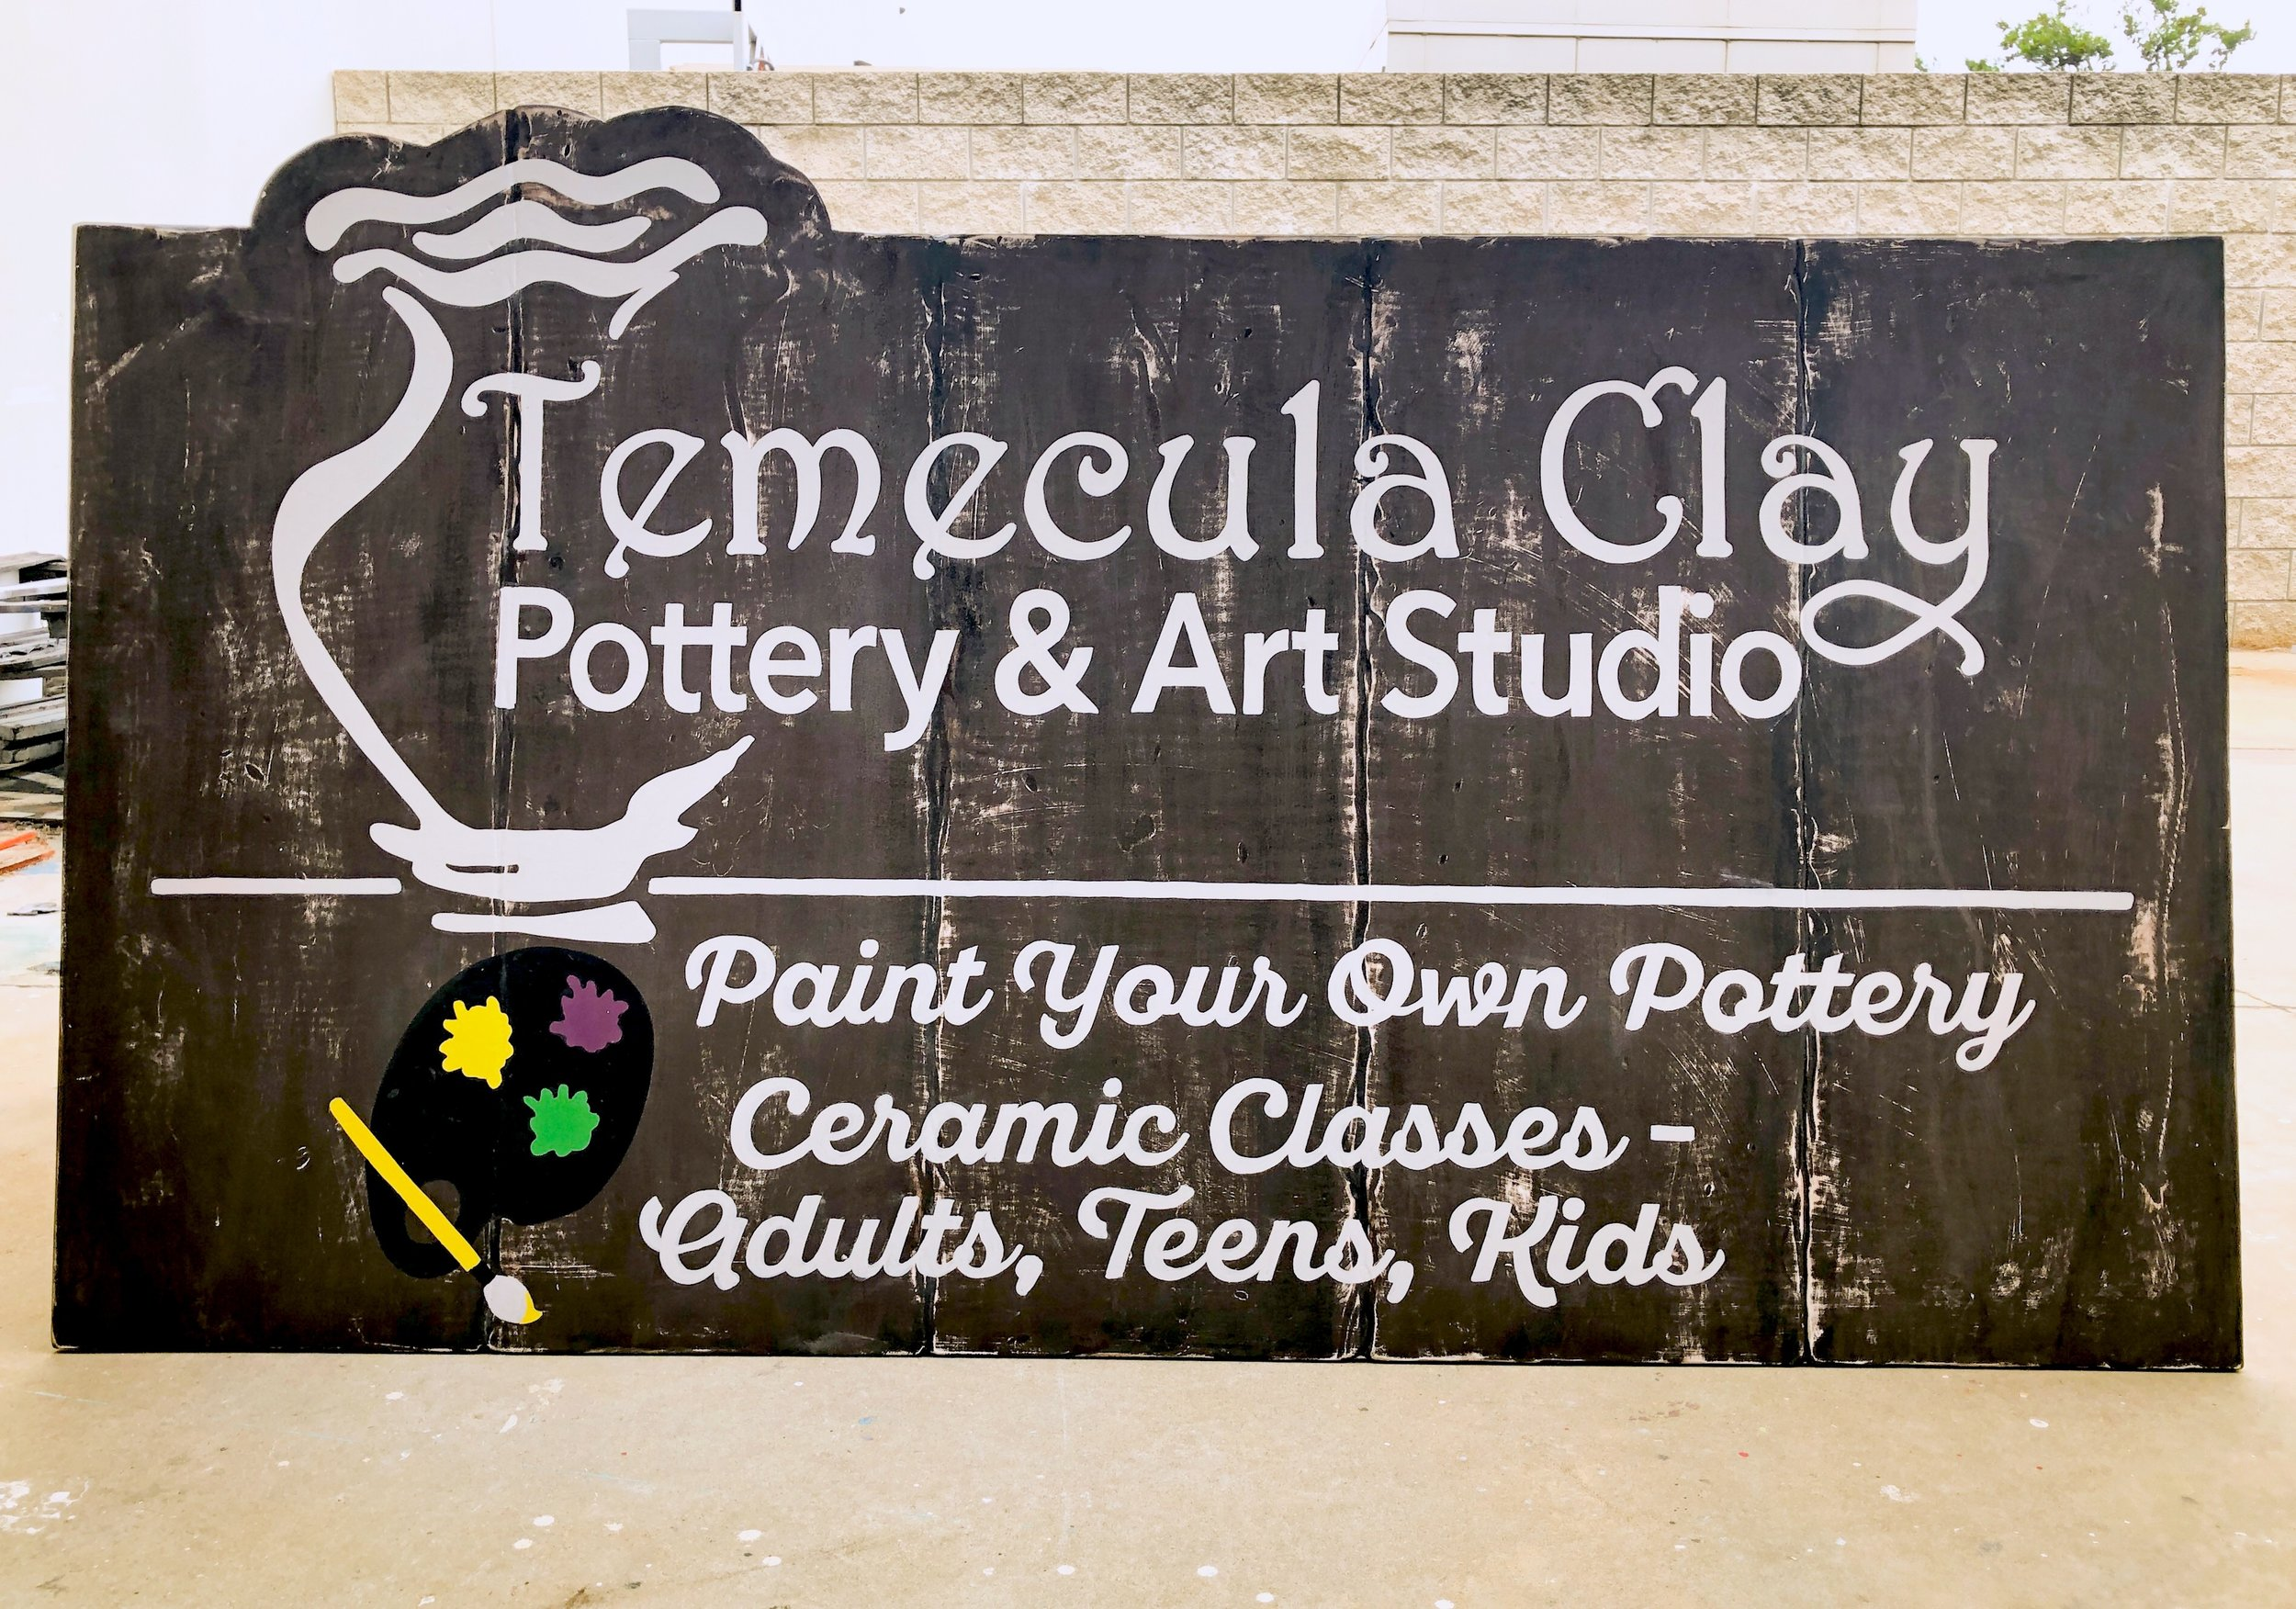 DISTRESSED BACKGROUND HAND PAINTED STOREFRONT SIGN